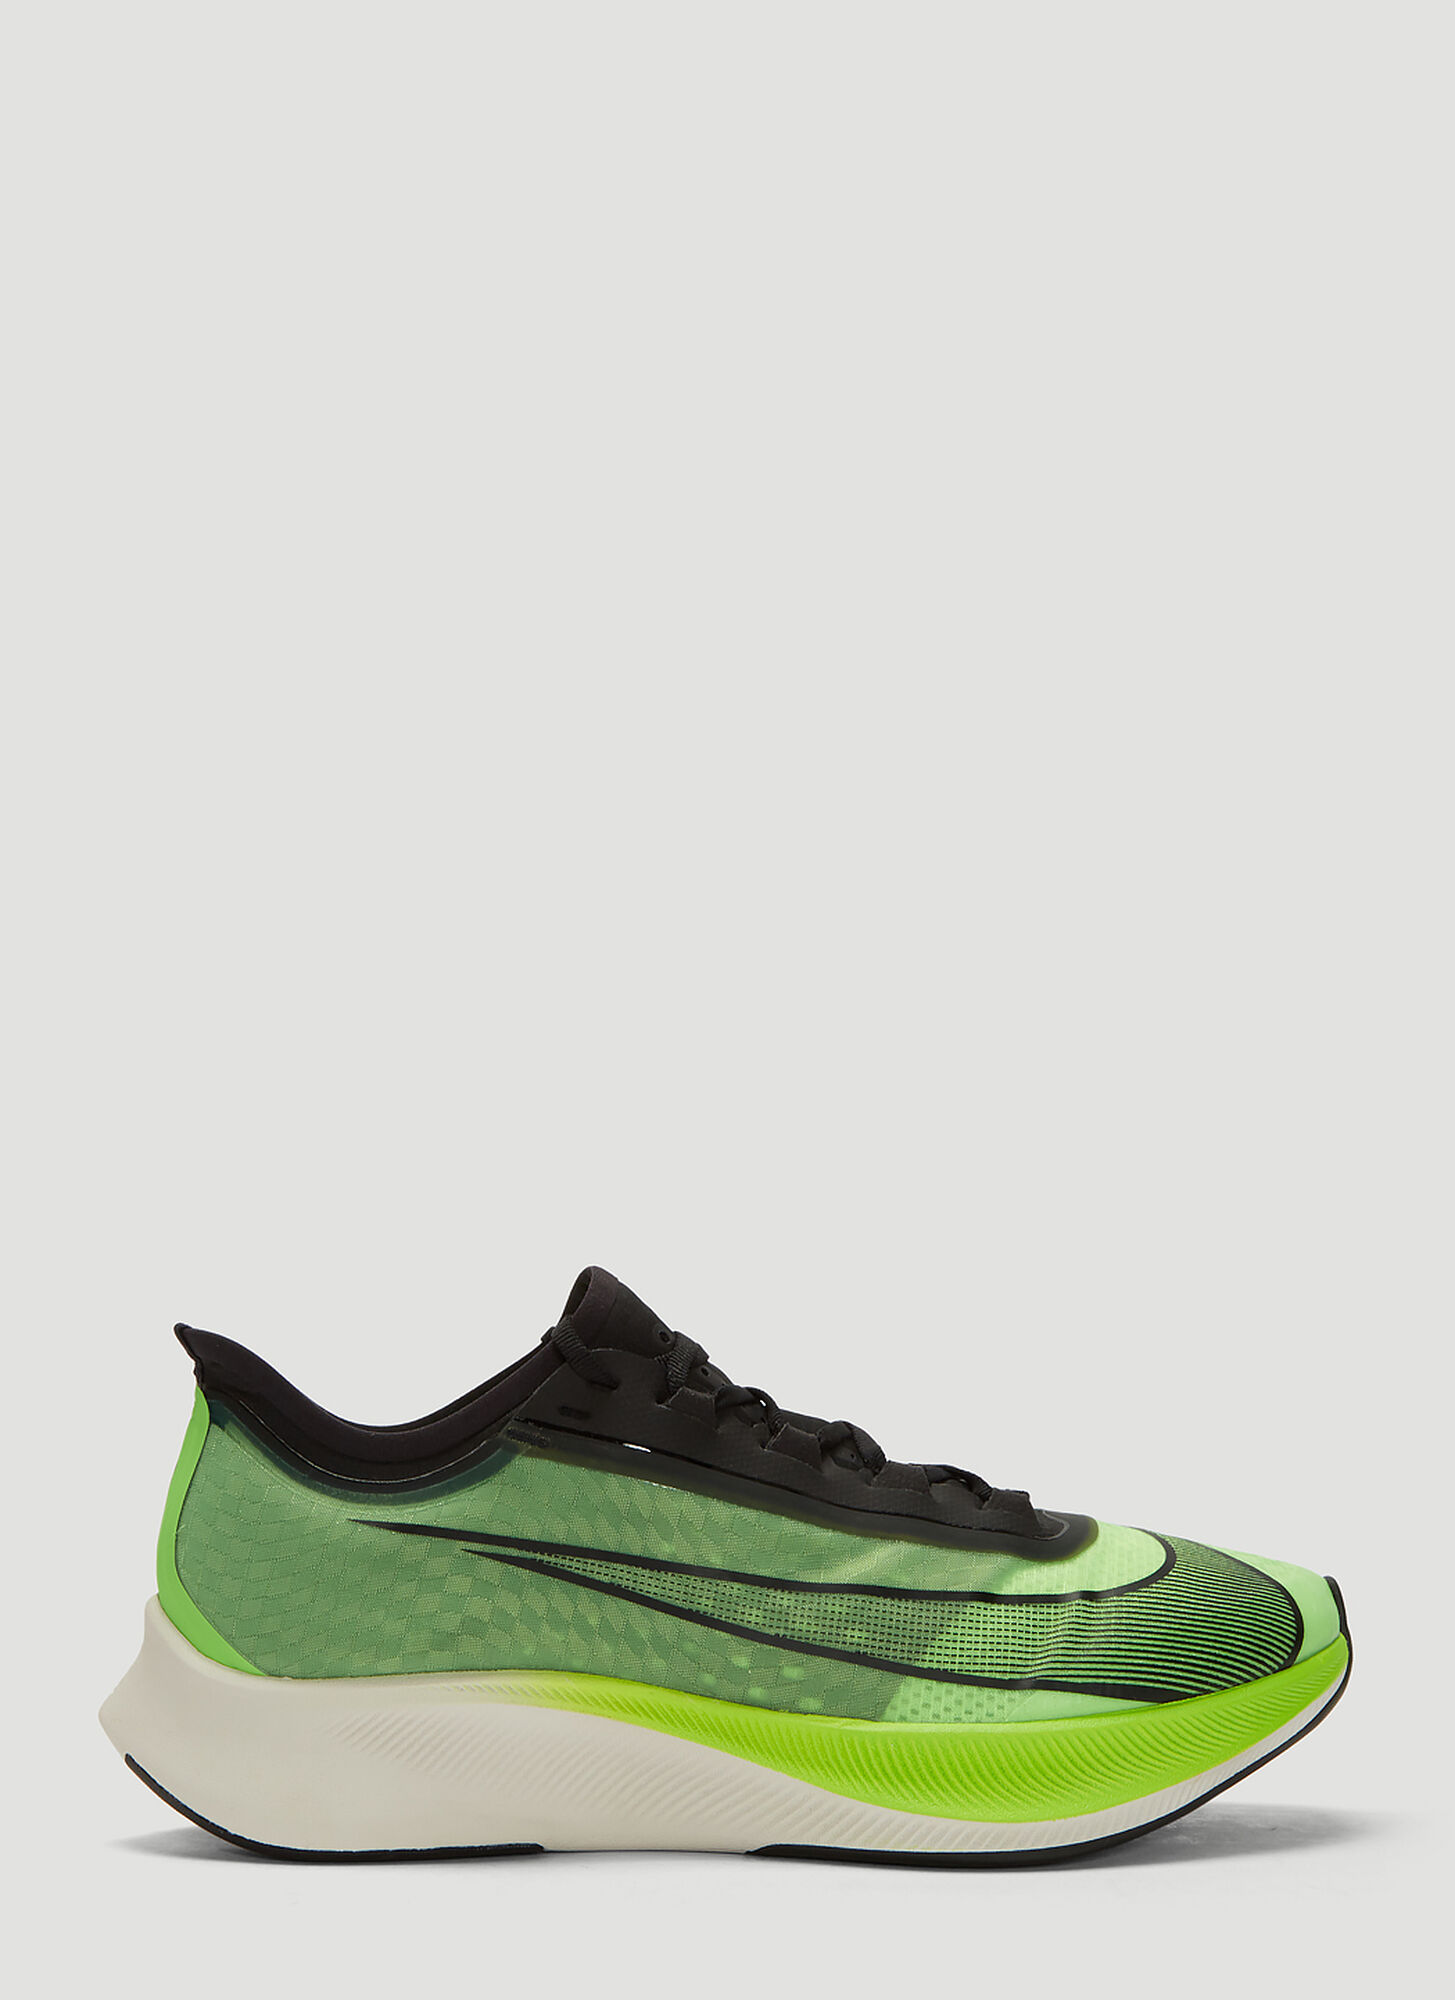 Nike Zoom Fly 3 Running Sneakers in Green